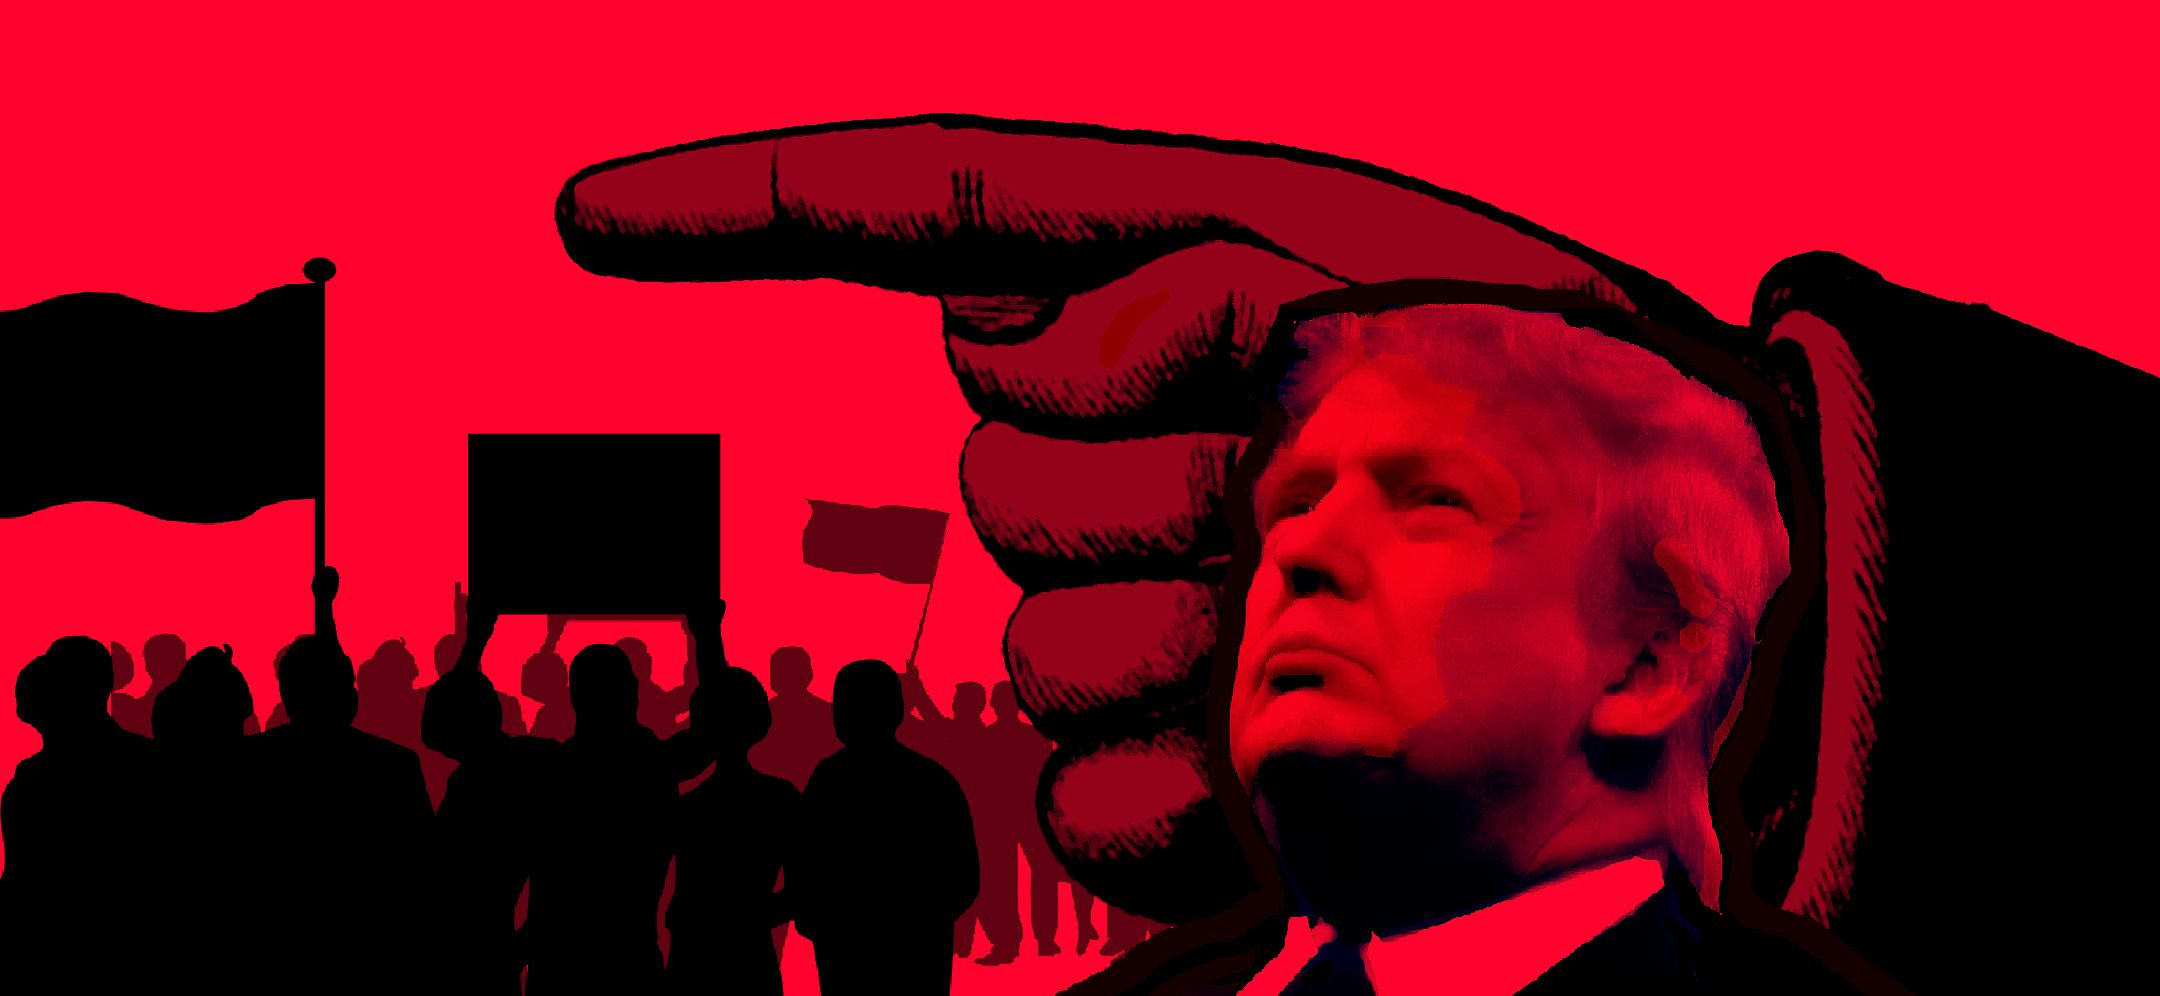 Image result for images of authoritarian by Trump in 2017